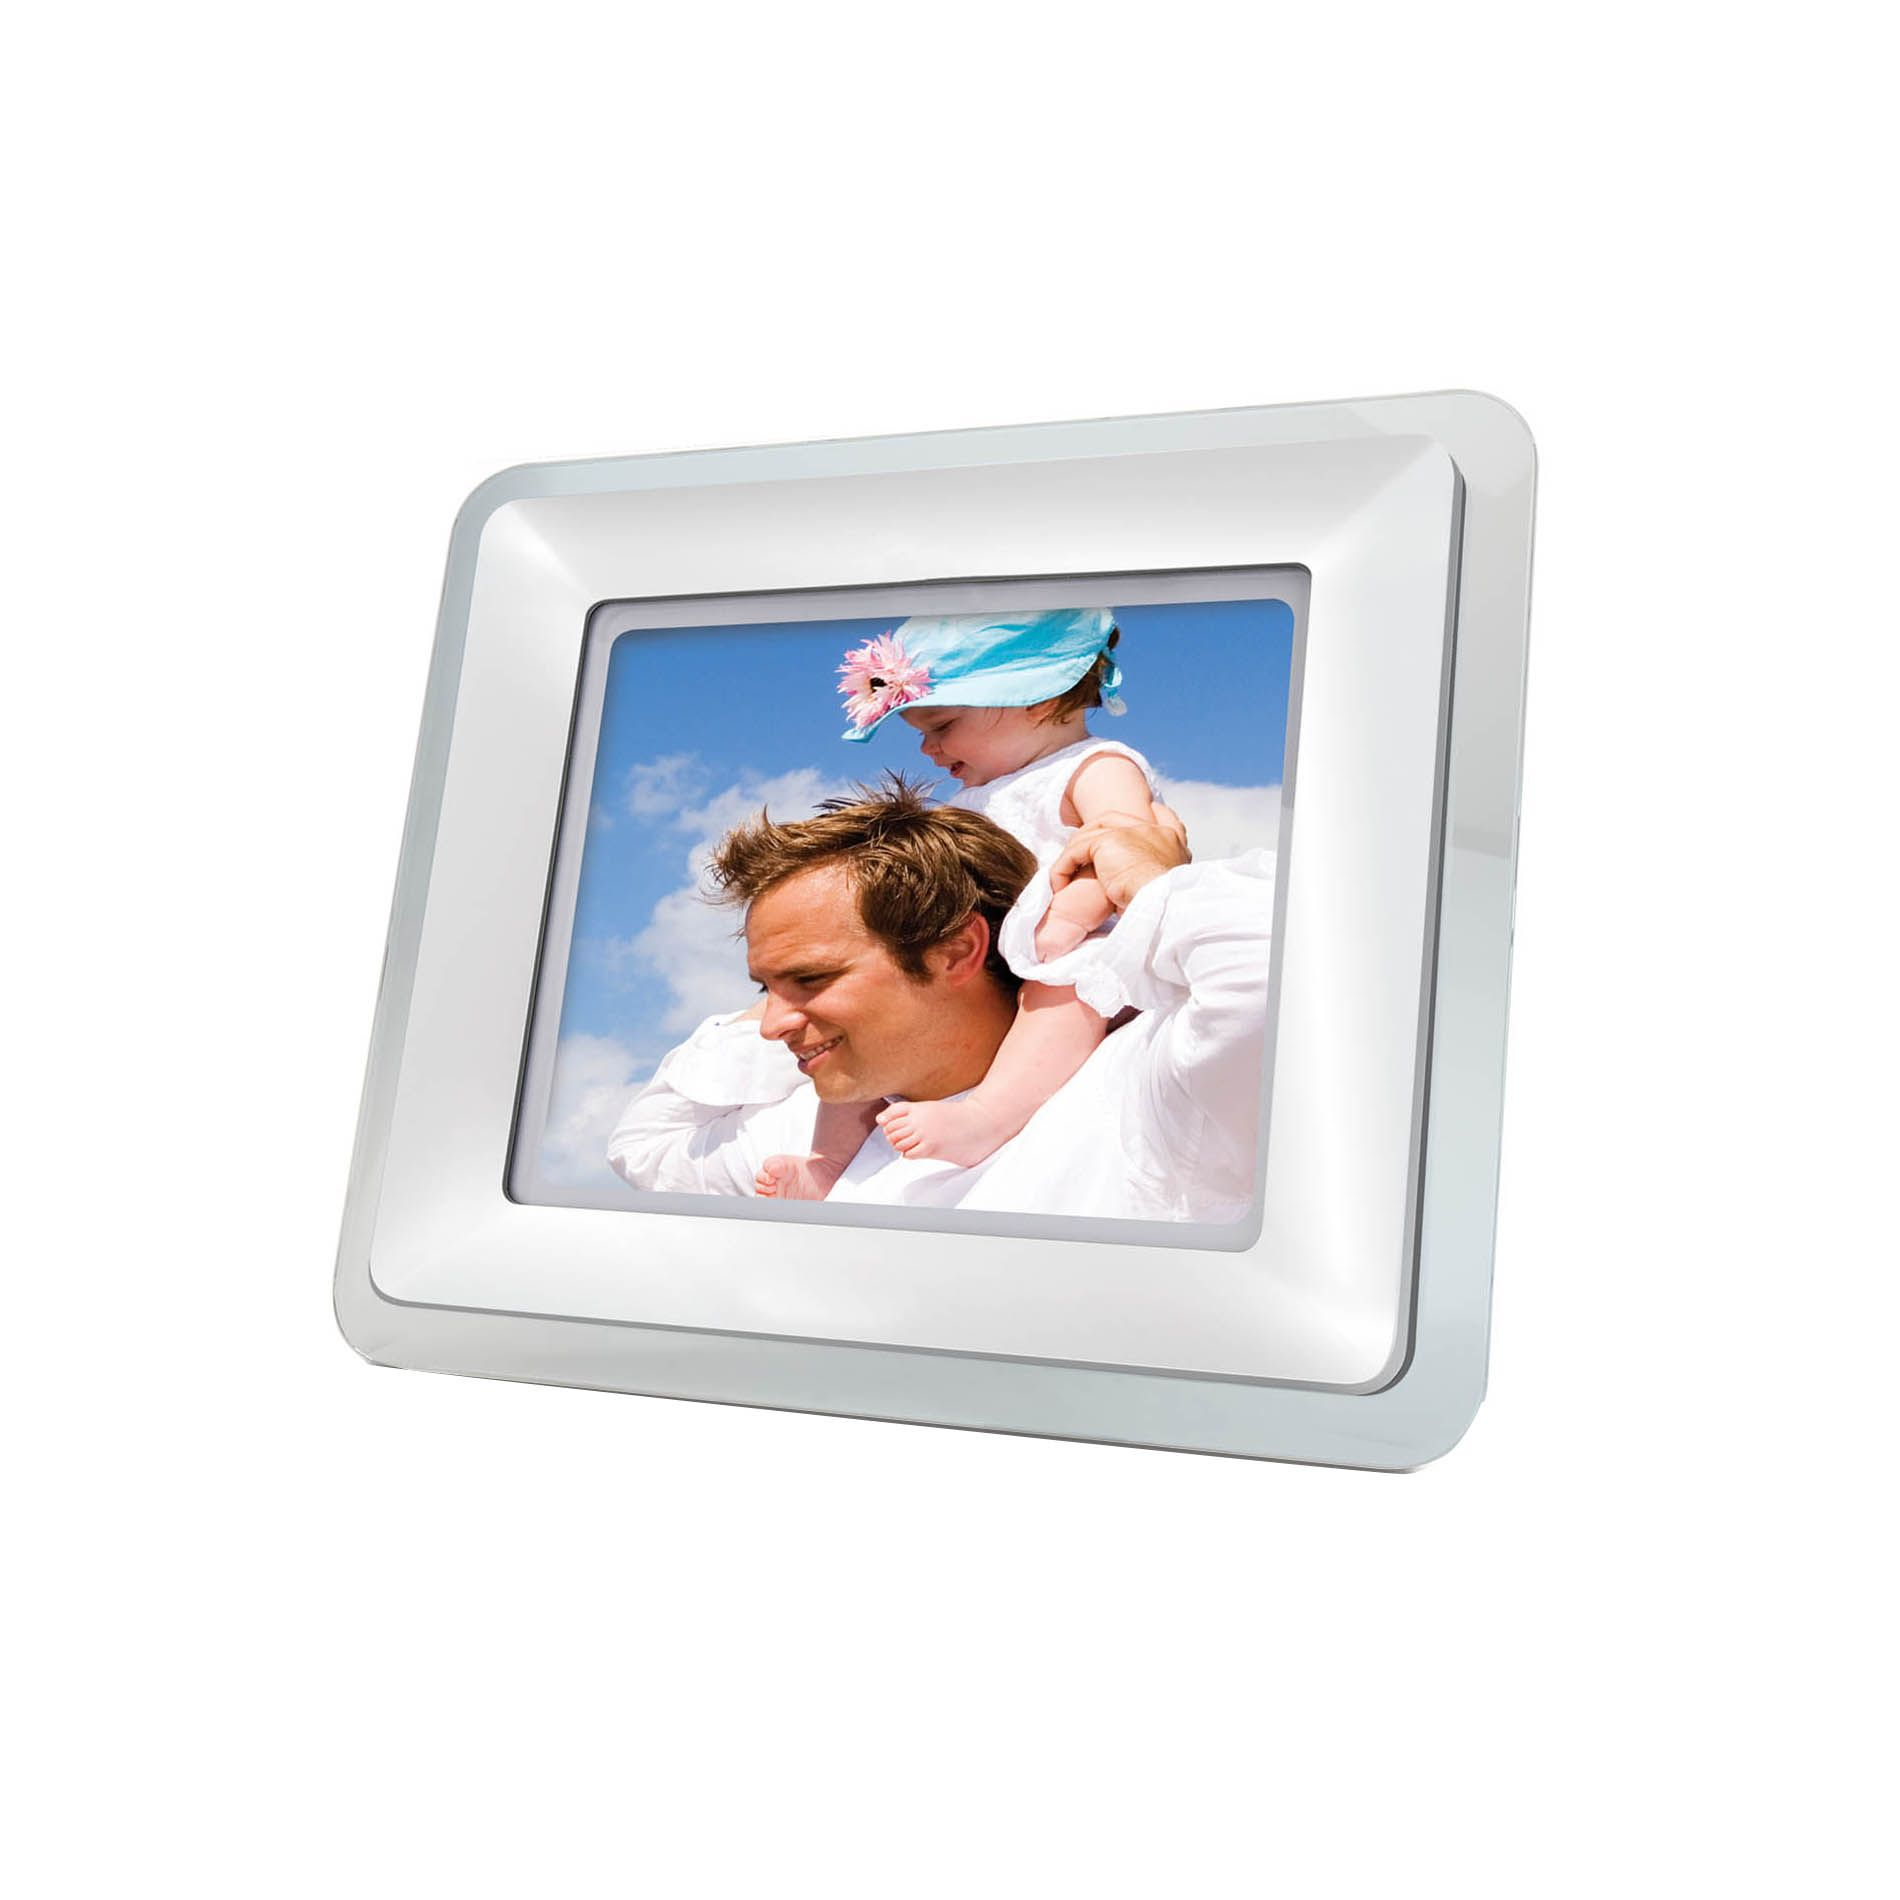 Kmart Digital Photo Frame Coby 5 6 In Digital Photo Frame With Mp3 Player Vinyl